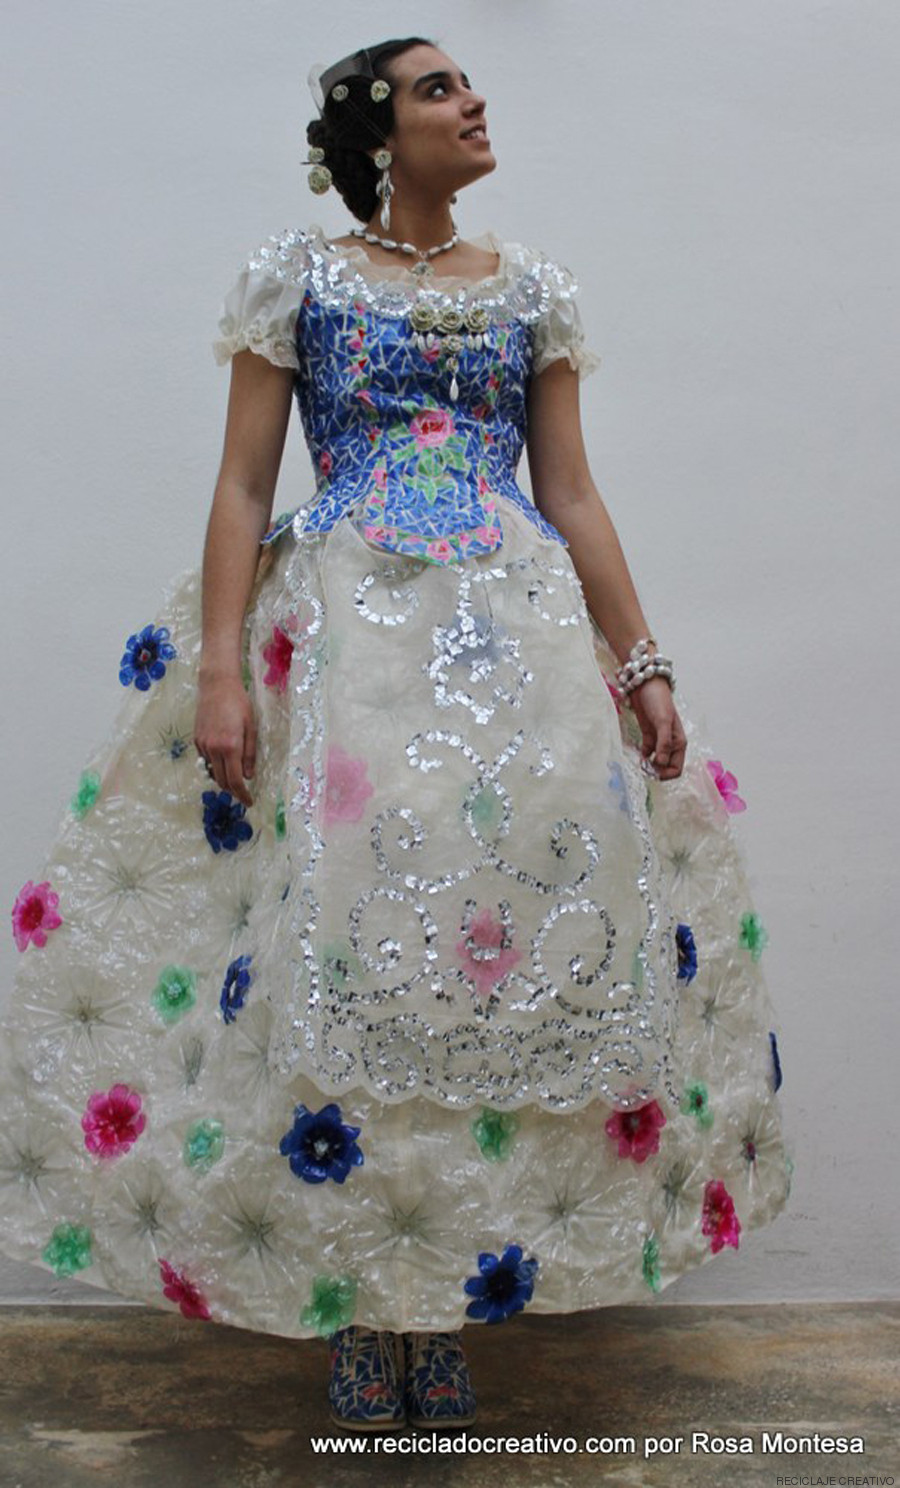 This Recycled Dress Is Made Of 180 Plastic Bottles (PHOTOS) | HuffPost